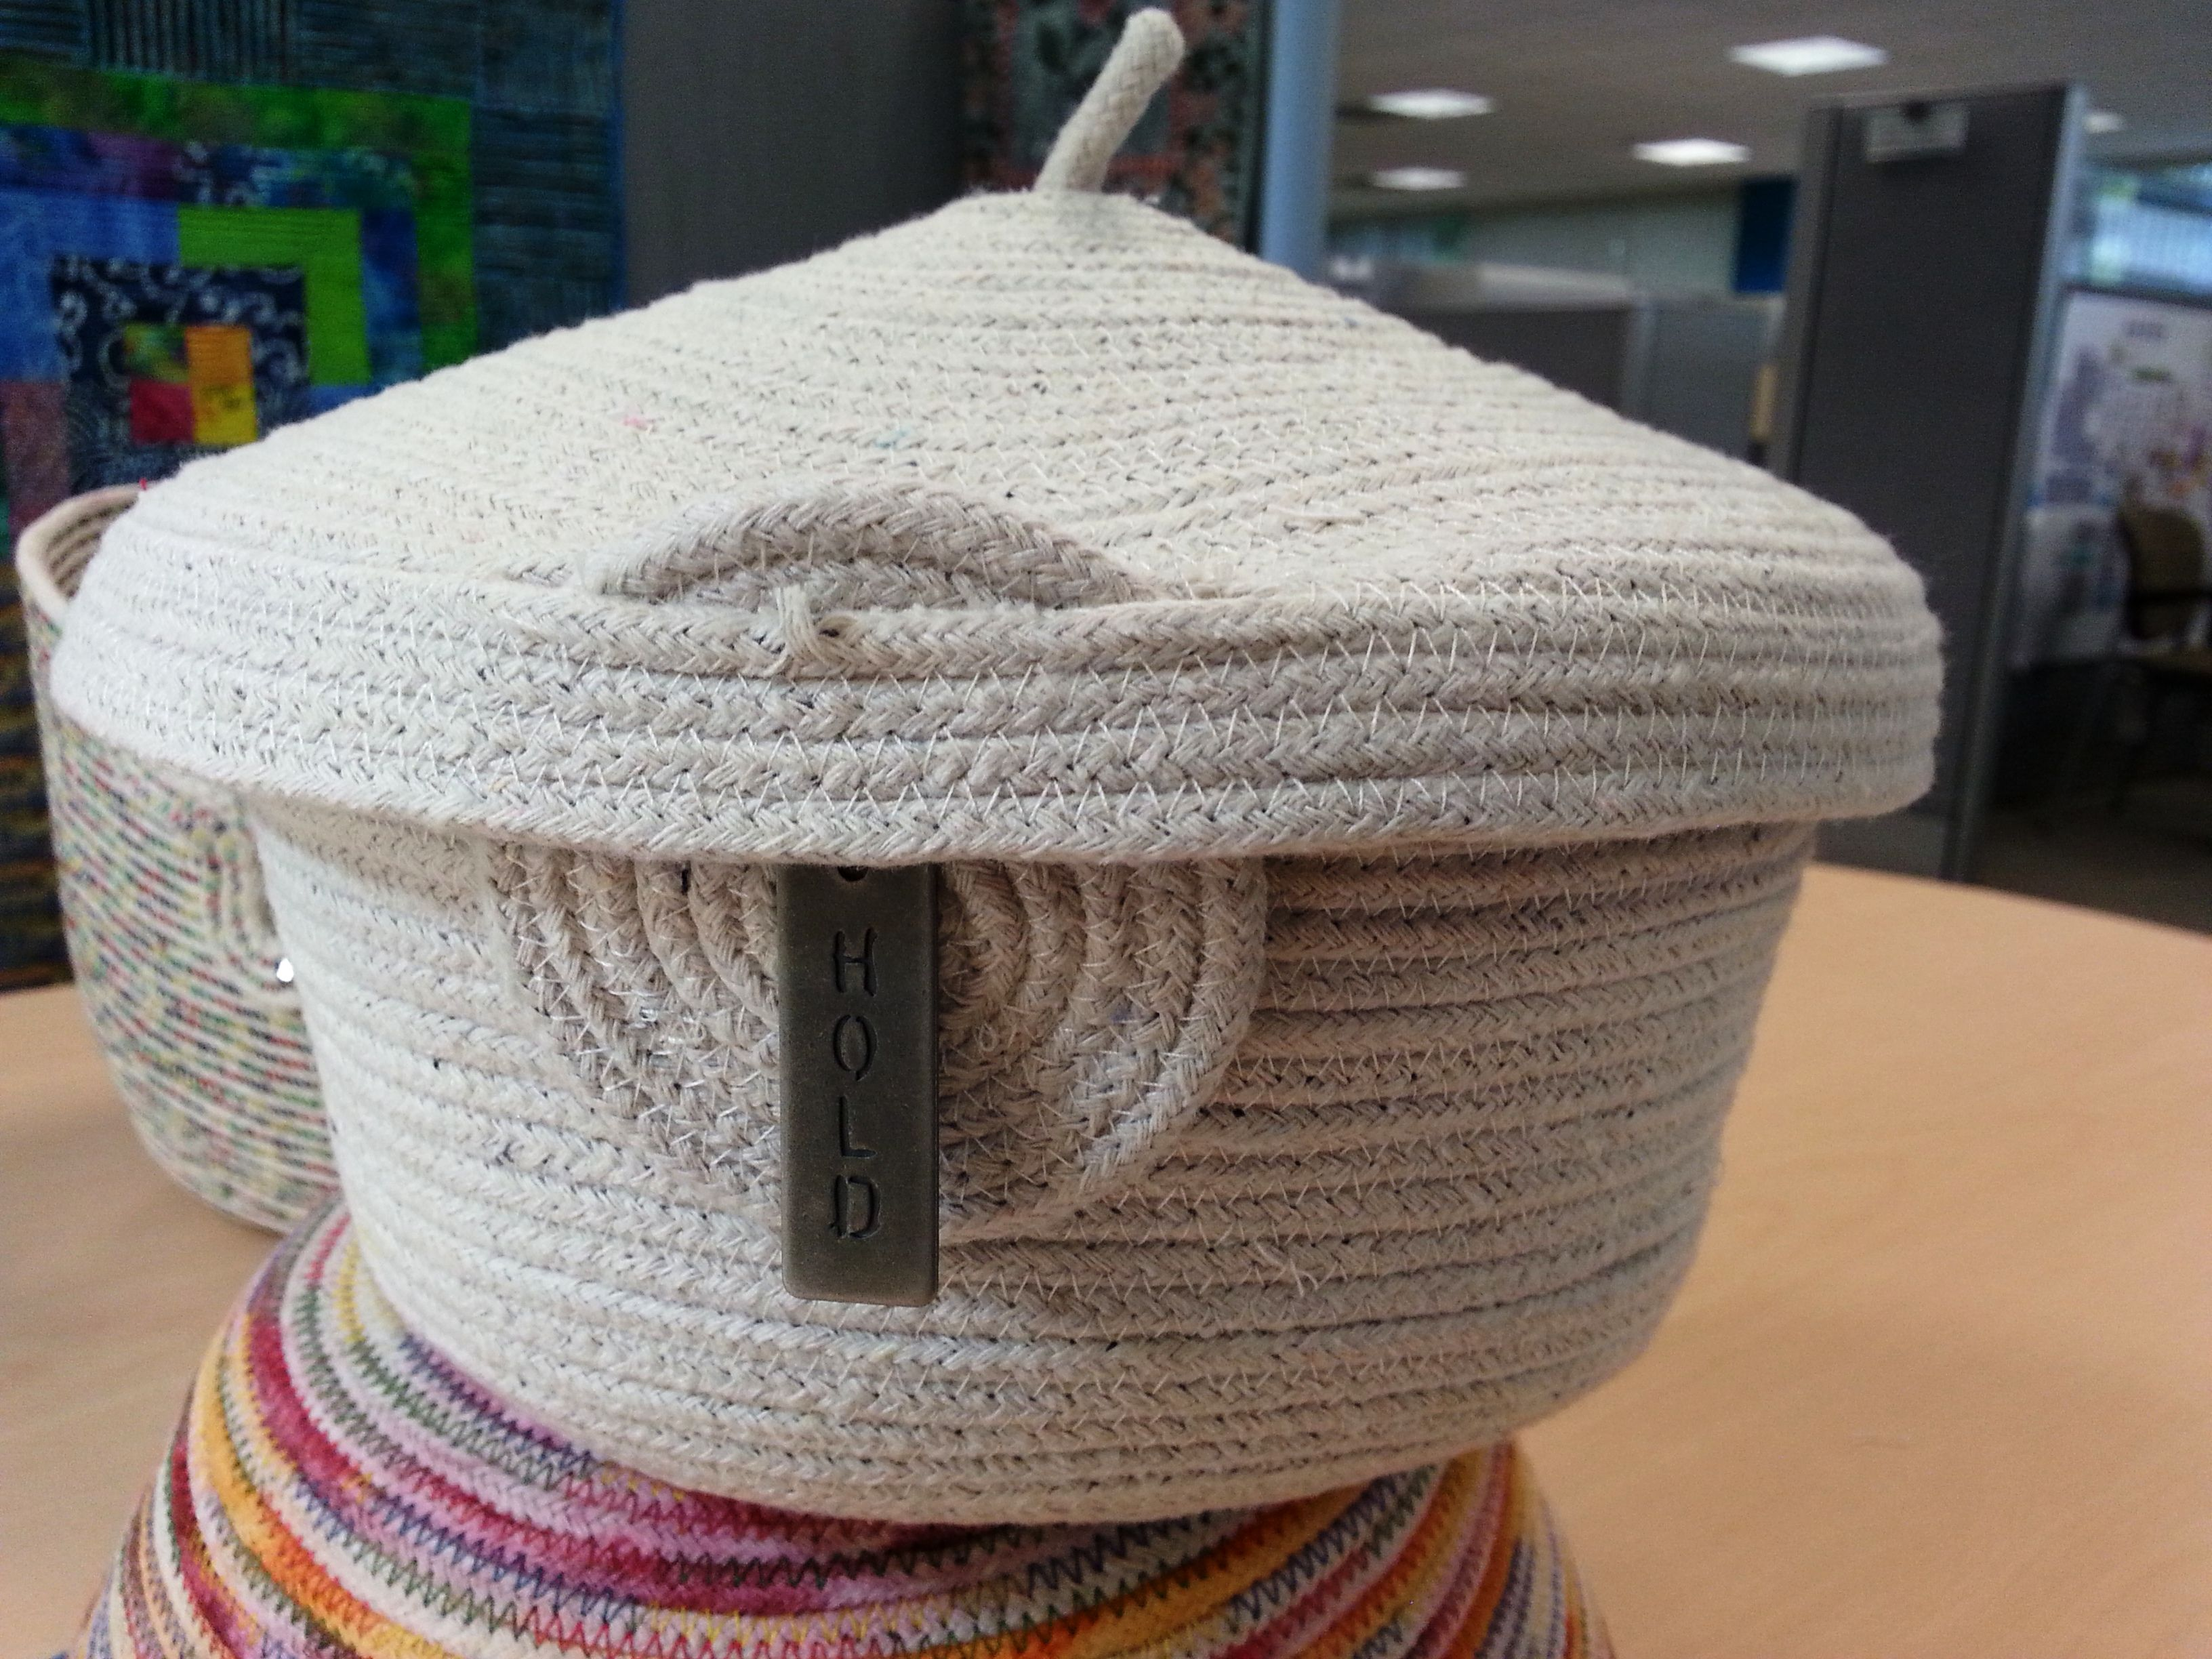 Cotton Clothesline Rope Gorgeous Plain Cotton Clothesline Lidded Basket With Peep Through Lid Made Design Ideas